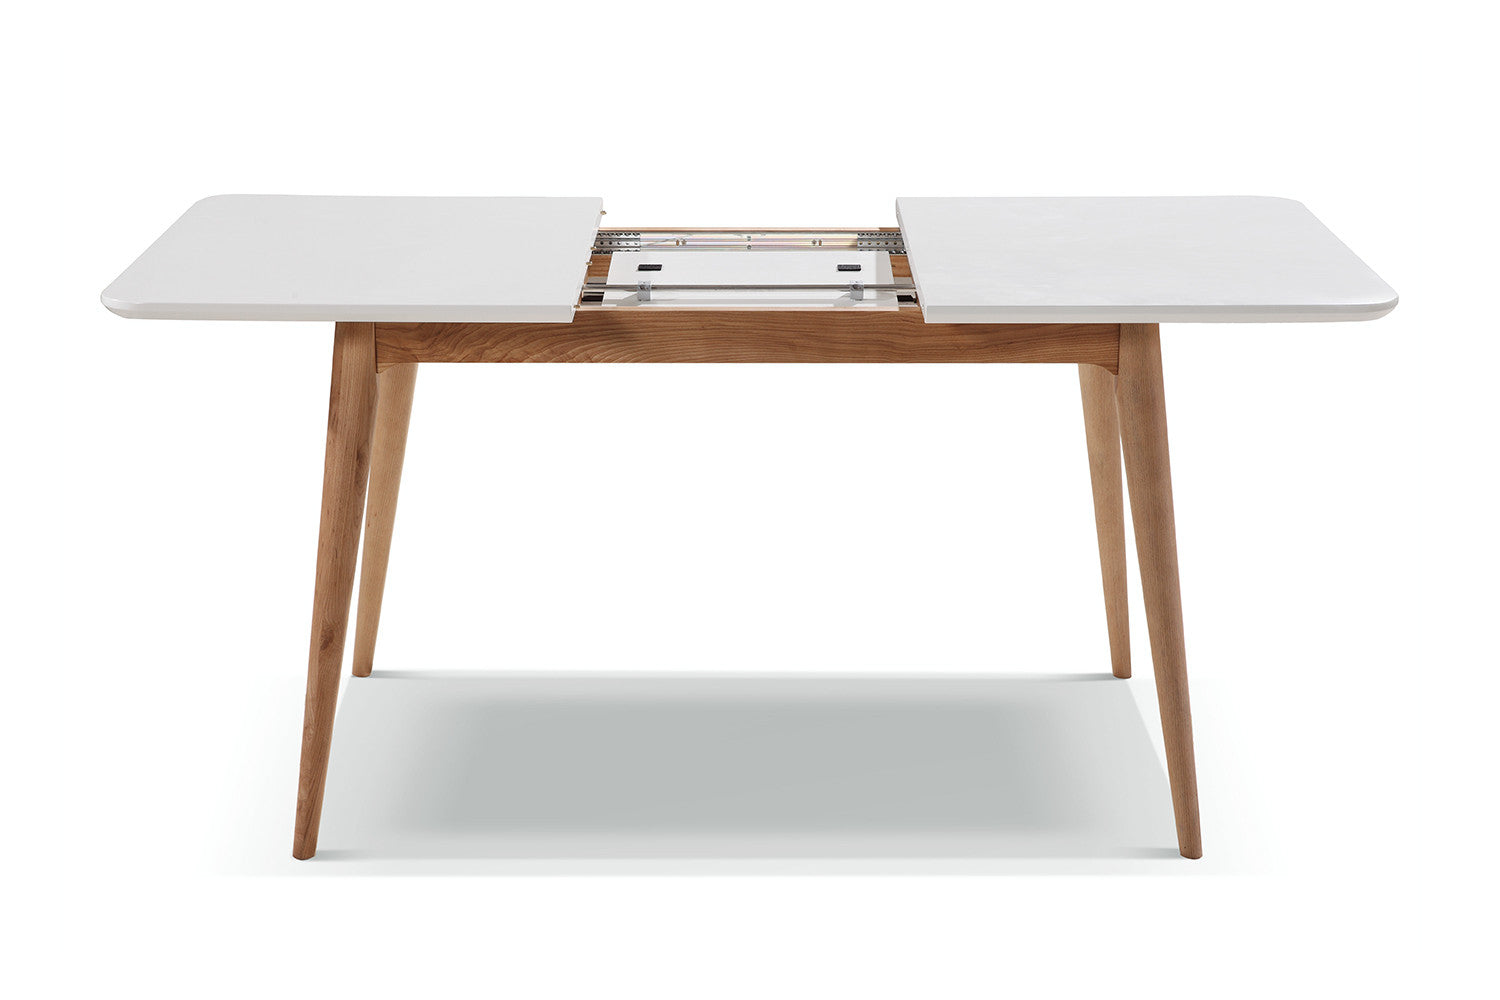 Table cuisine avec rallonge maison design for Table extensible rallonge integree